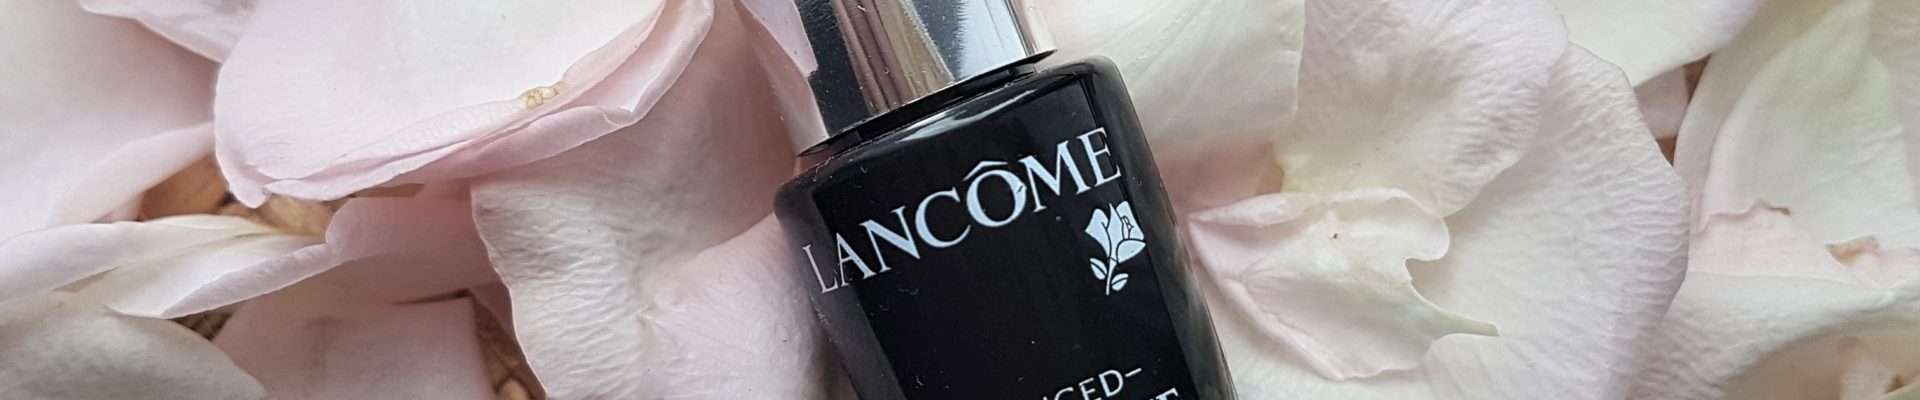 Lancome Advanced Genifique serum sample on rose petals